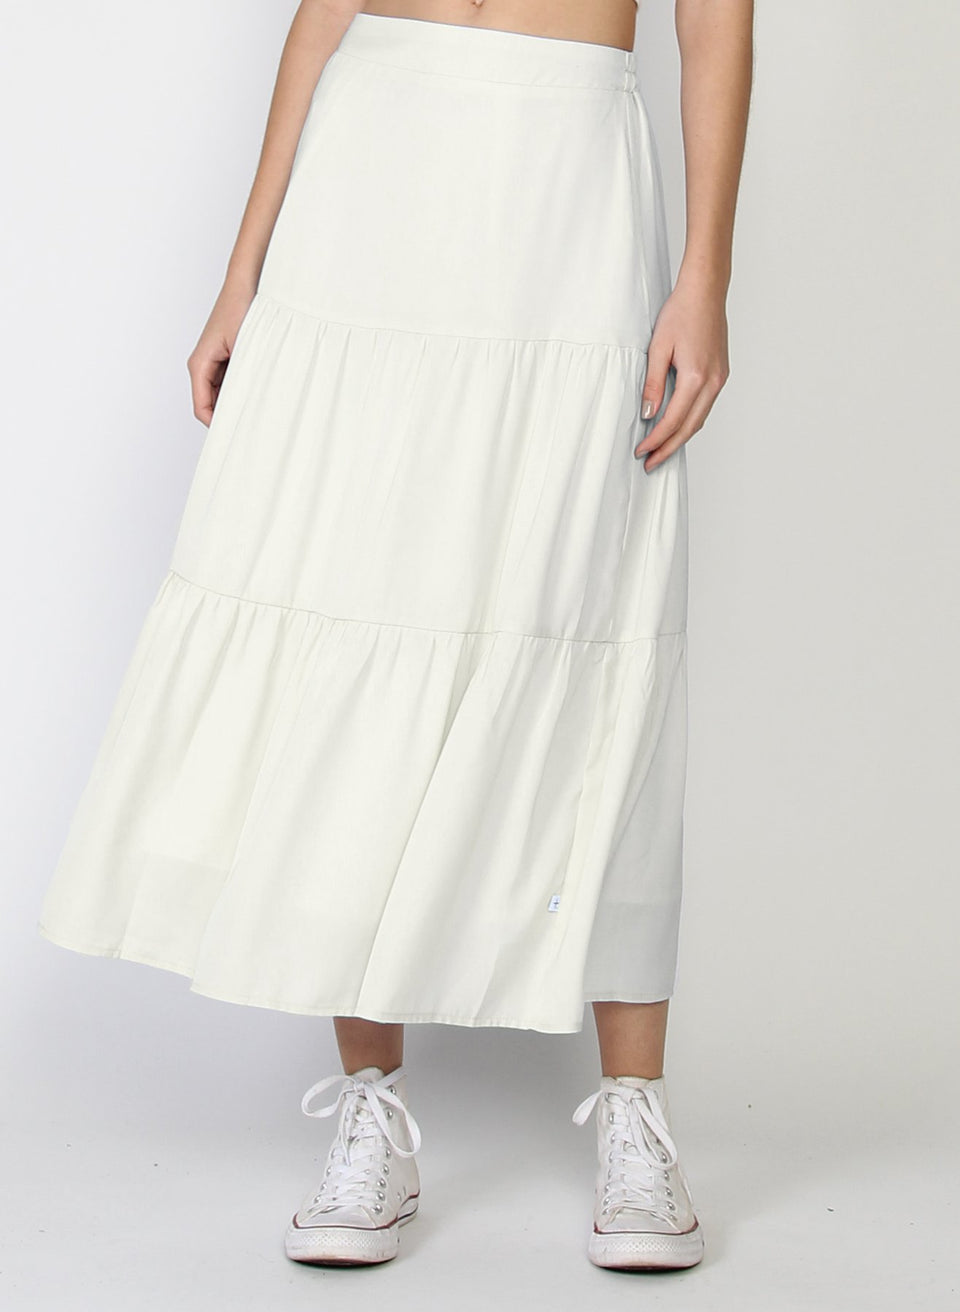 Federation Tier Skirt - Ivory